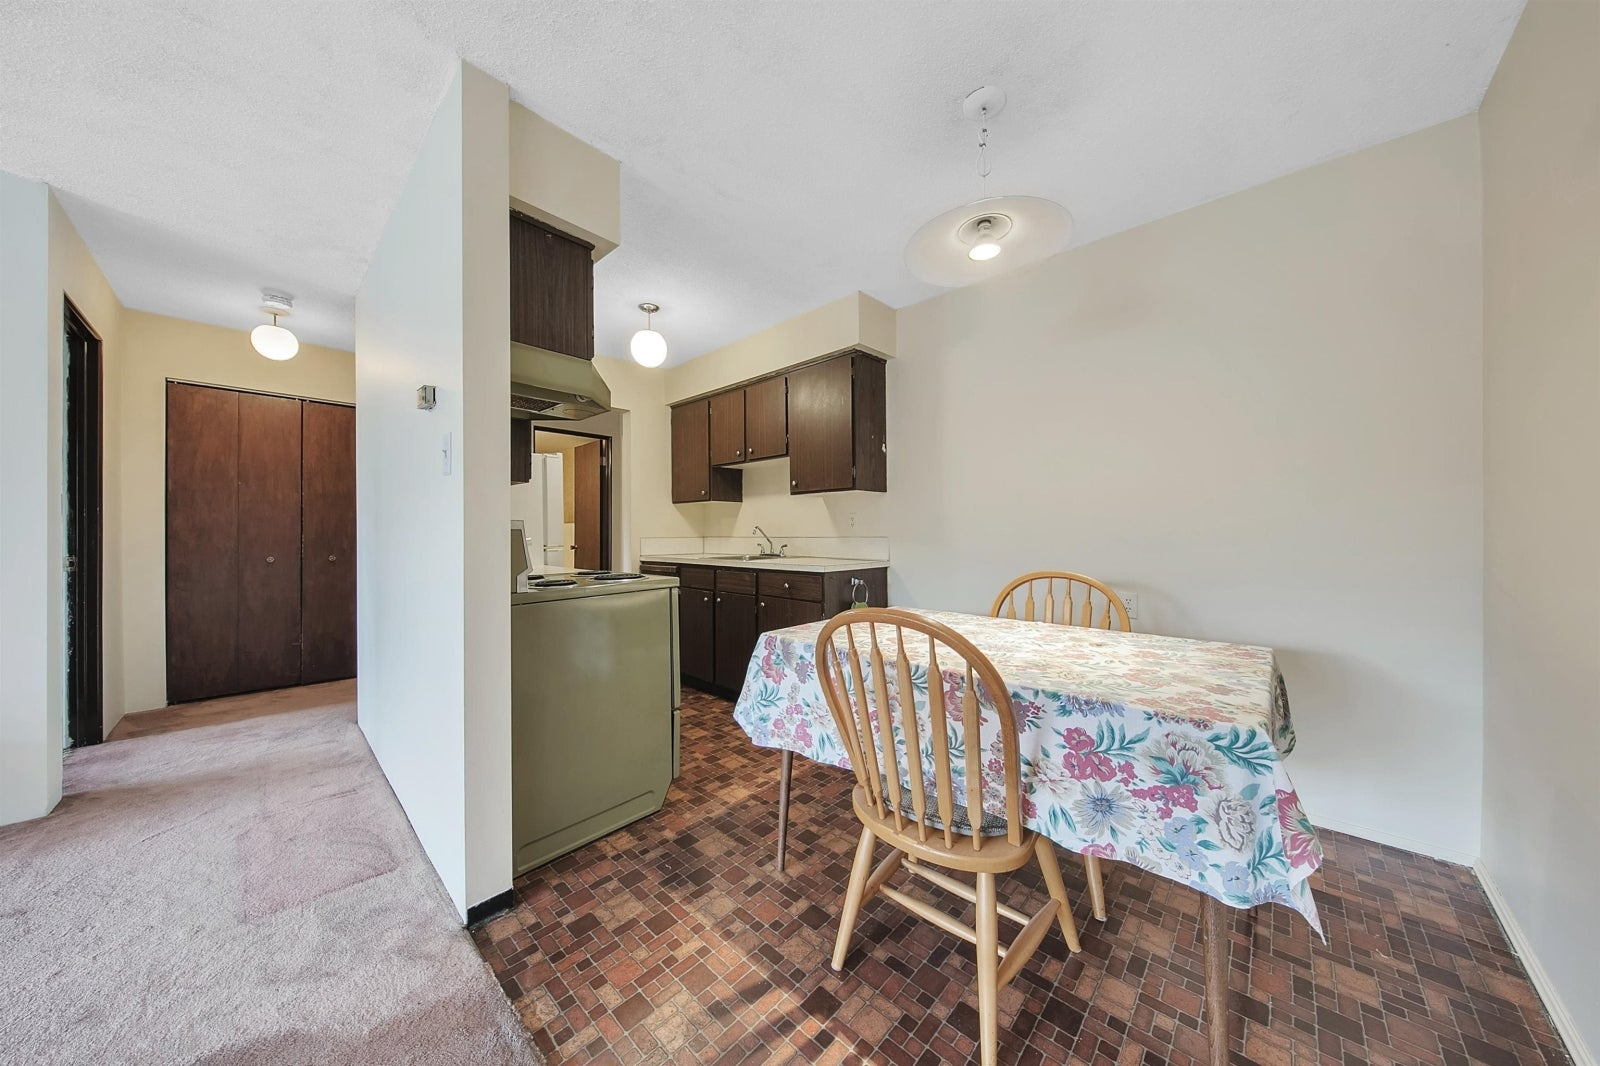 306 1345 CHESTERFIELD AVENUE - Central Lonsdale Apartment/Condo for sale, 1 Bedroom (R2622121) #14